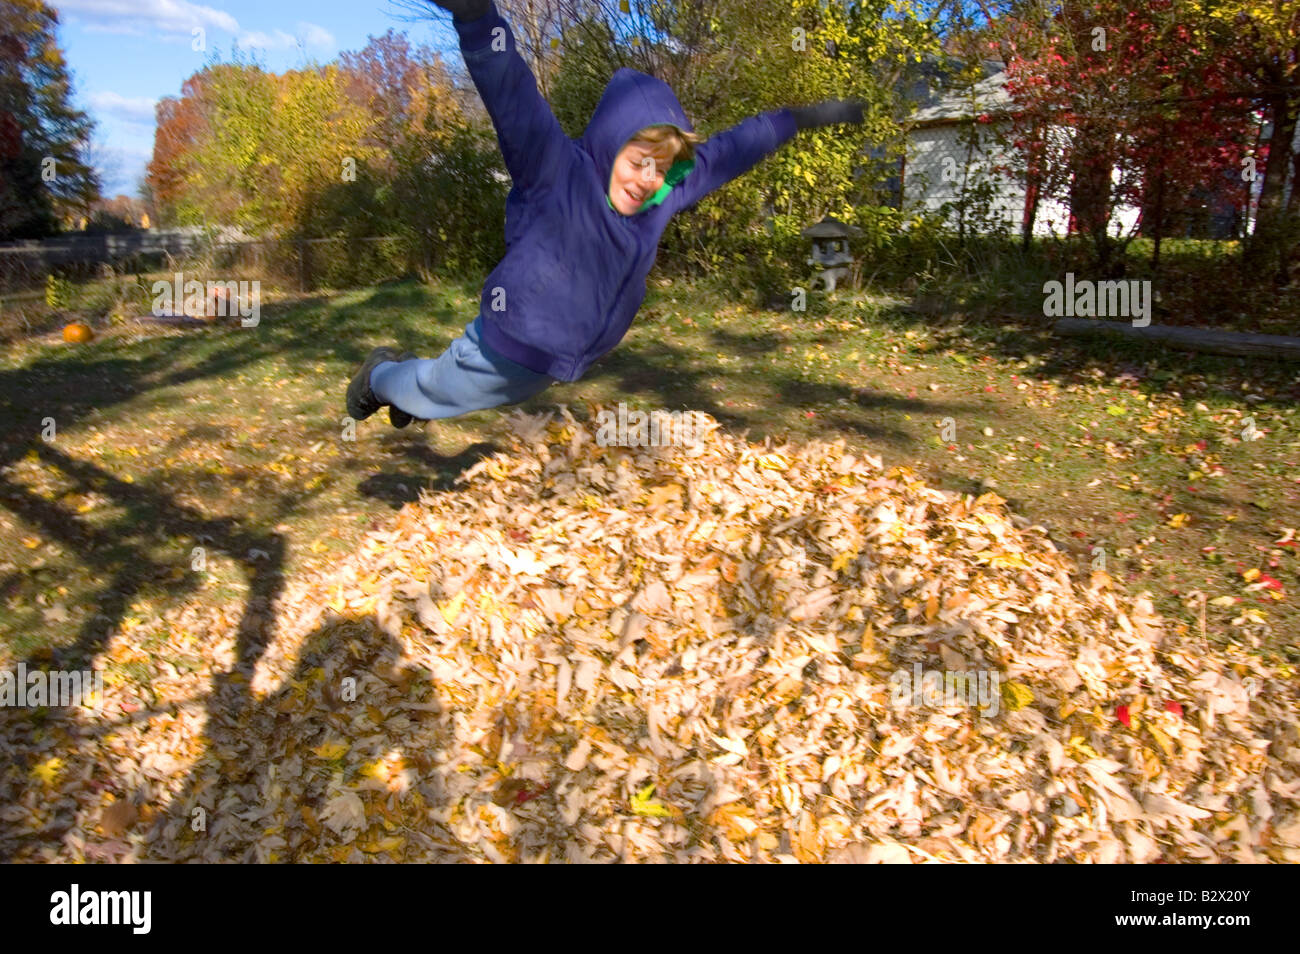 boy jumping into pile of leaves stock photo royalty free image